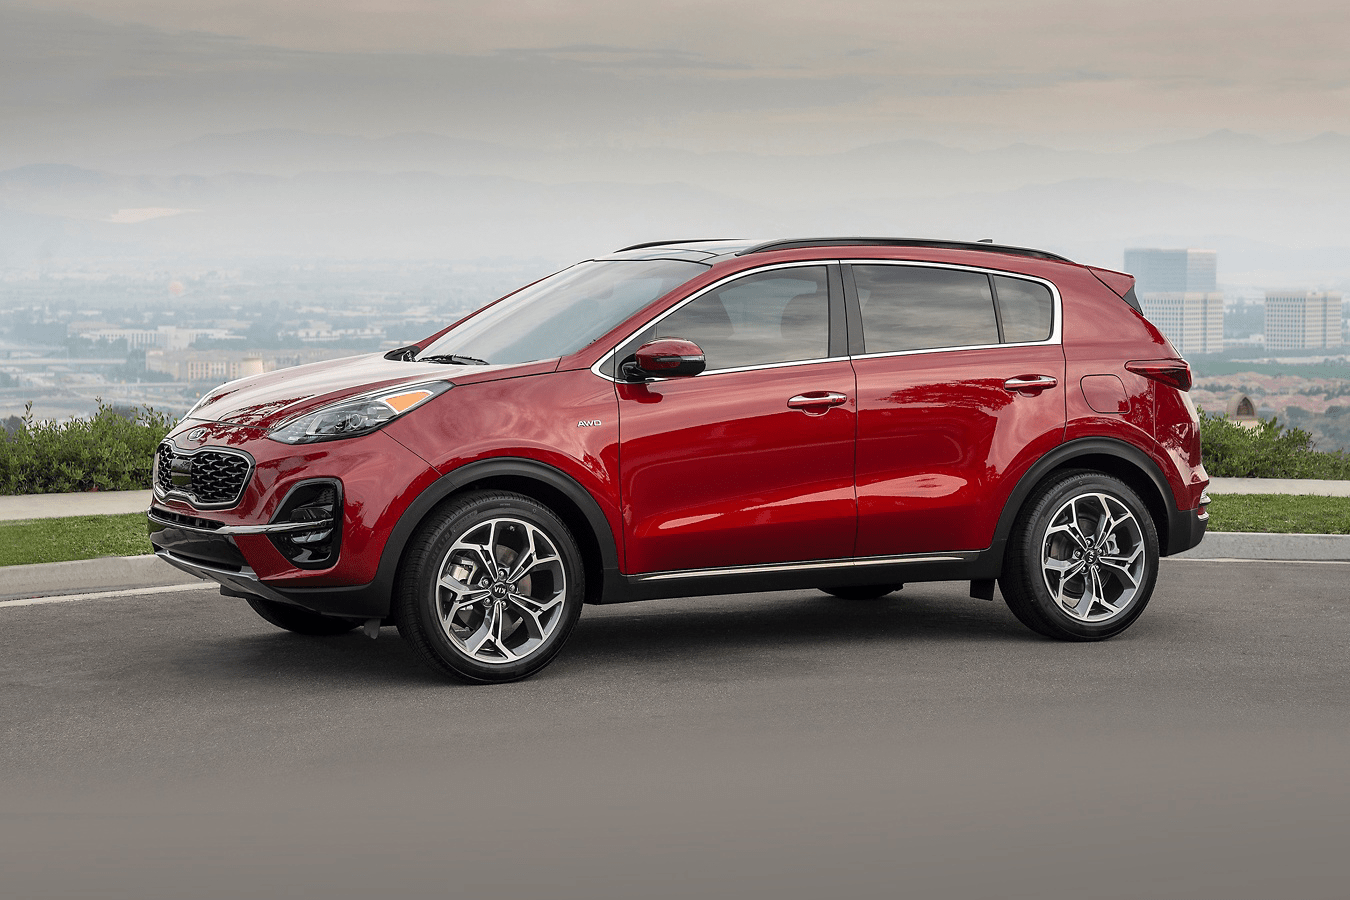 2020 Sportage side view